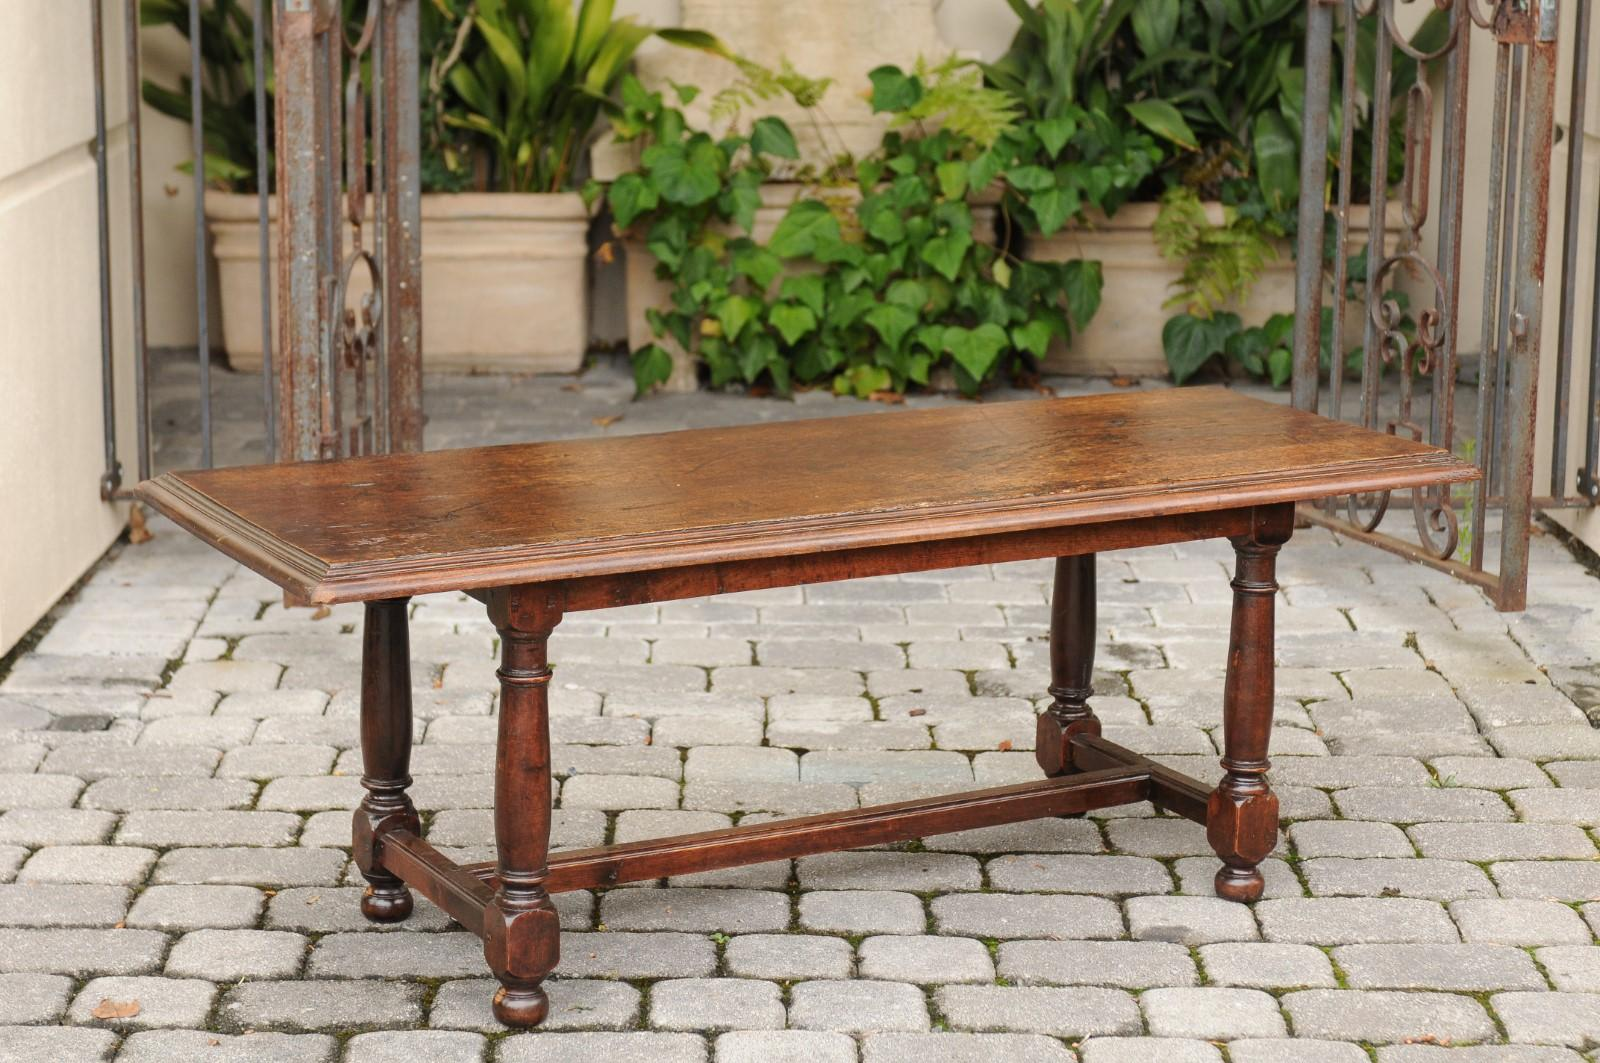 Italian Oak Coffee Table With Turned Legs And Cross Stretcher, Circa 1880  For Sale 2